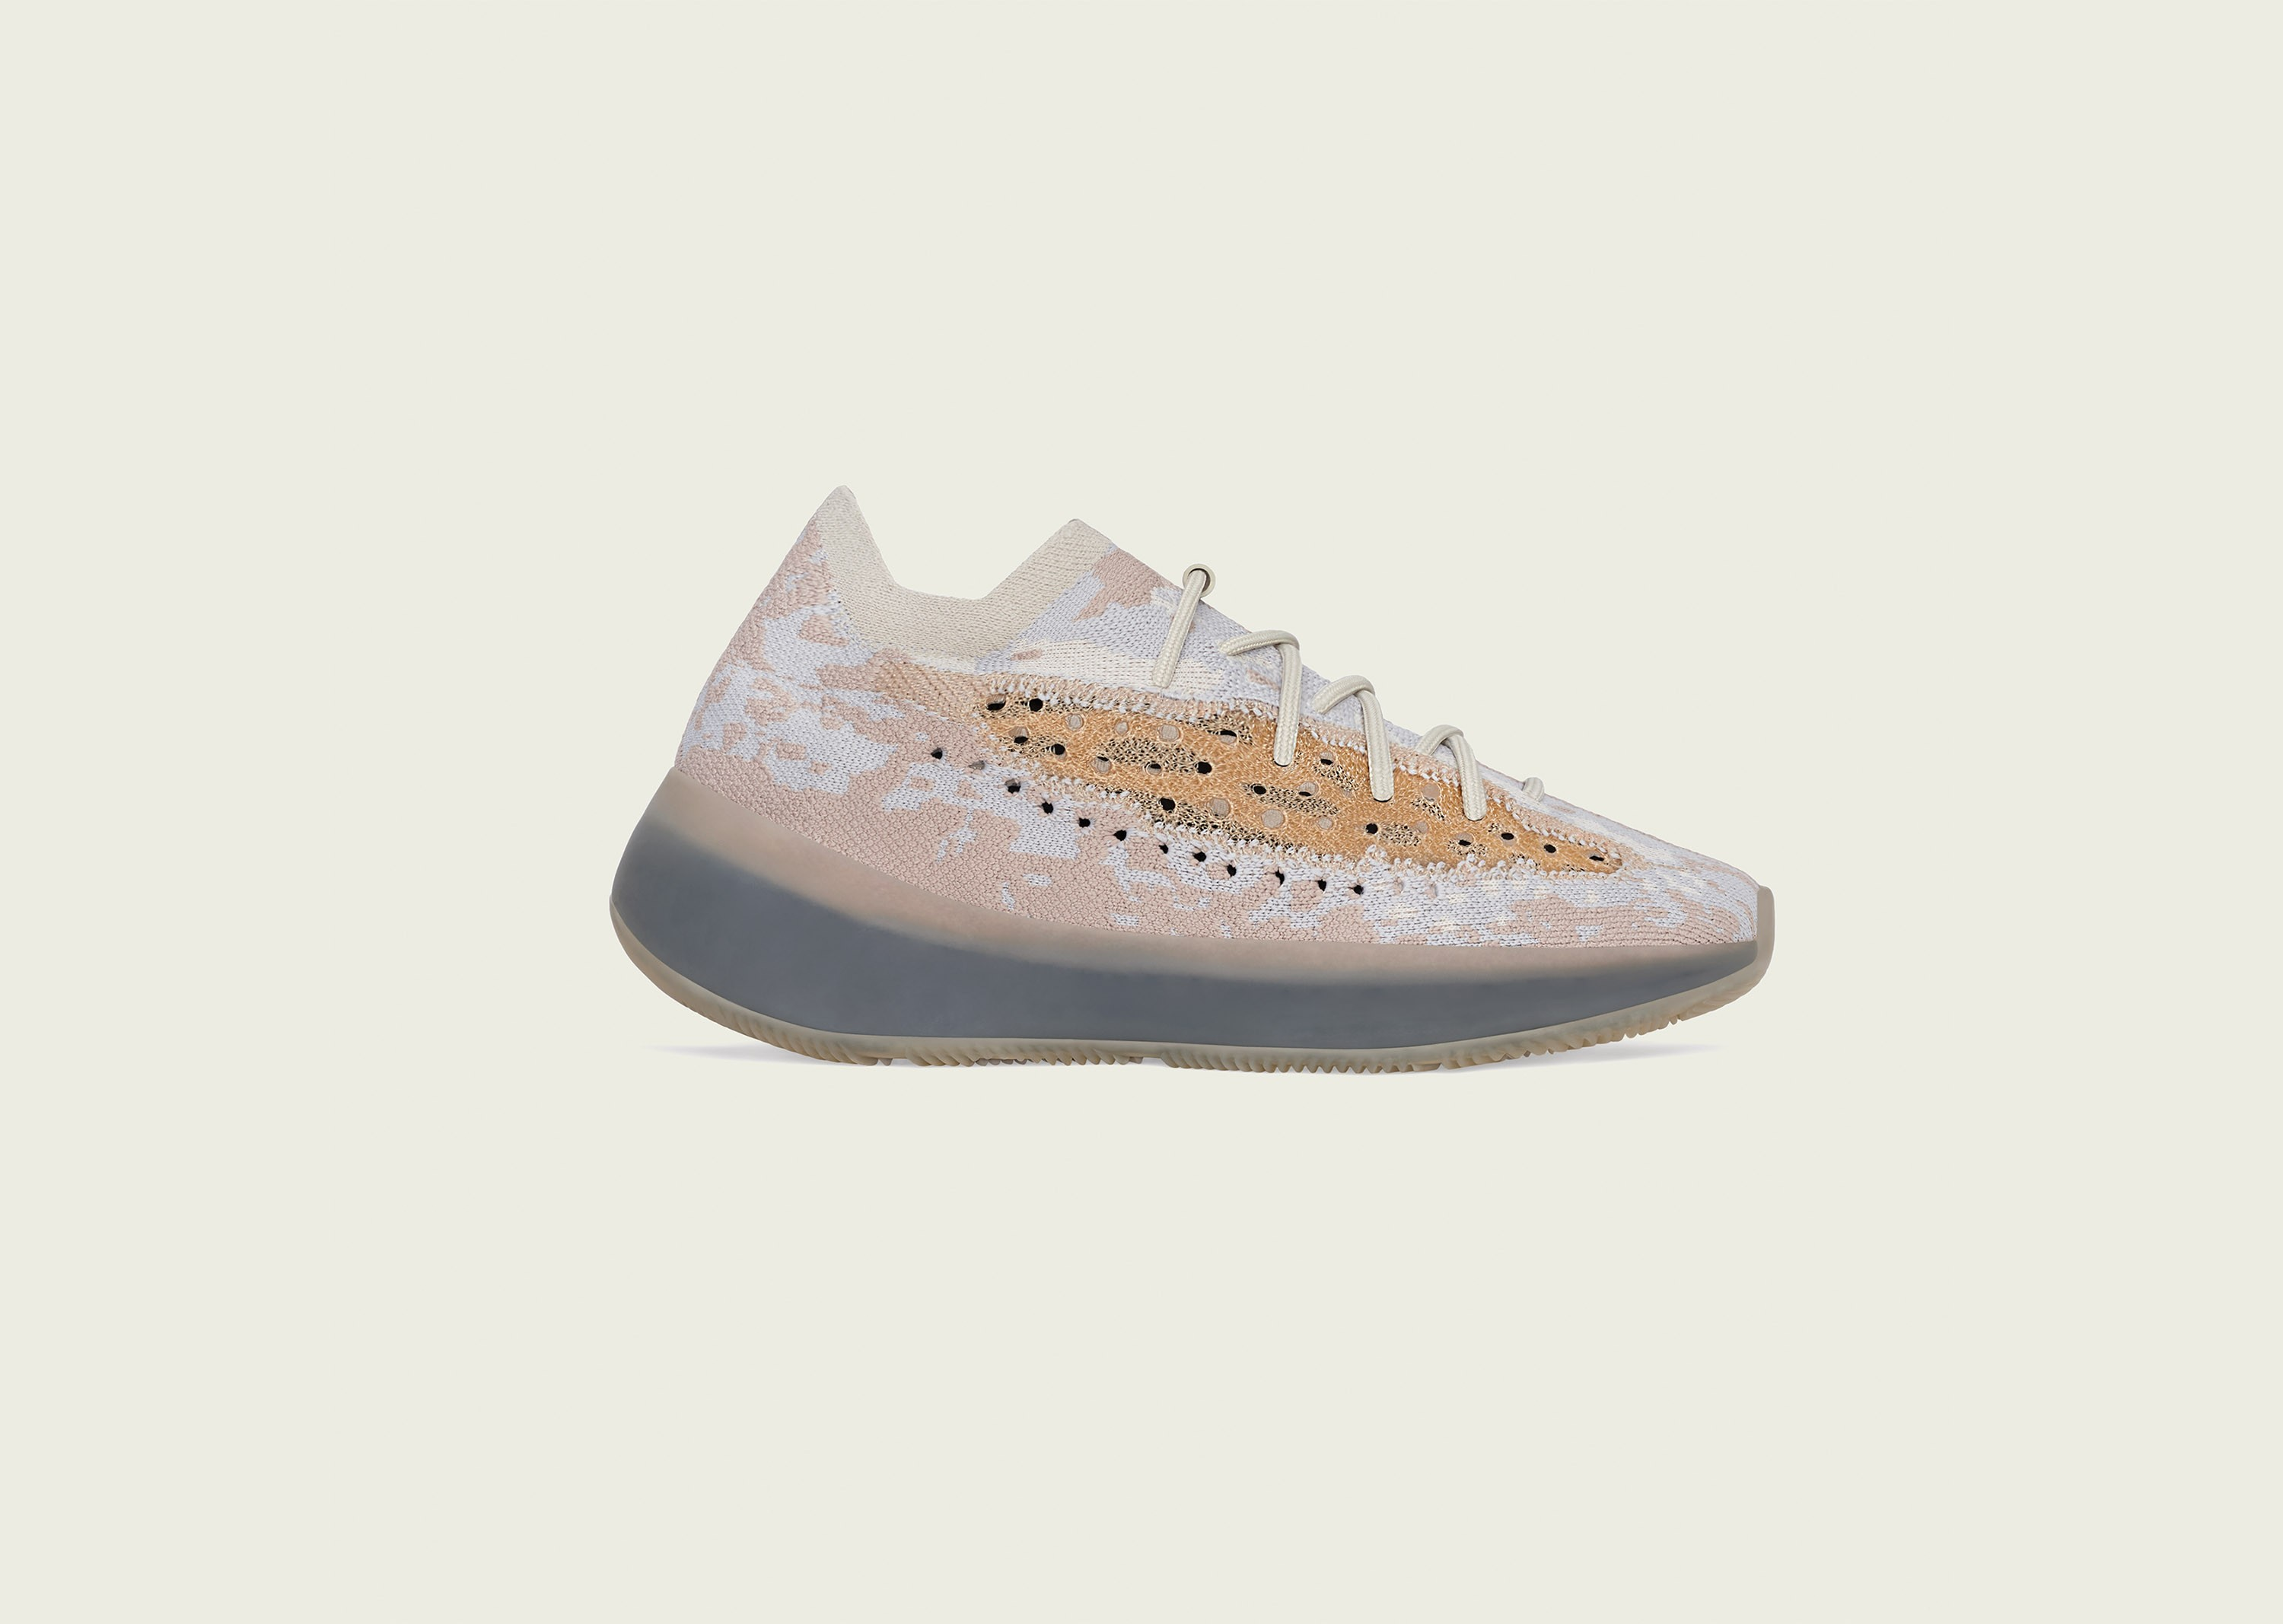 yeezy_380_pepper__0001_FZ1269_SLC_eCom